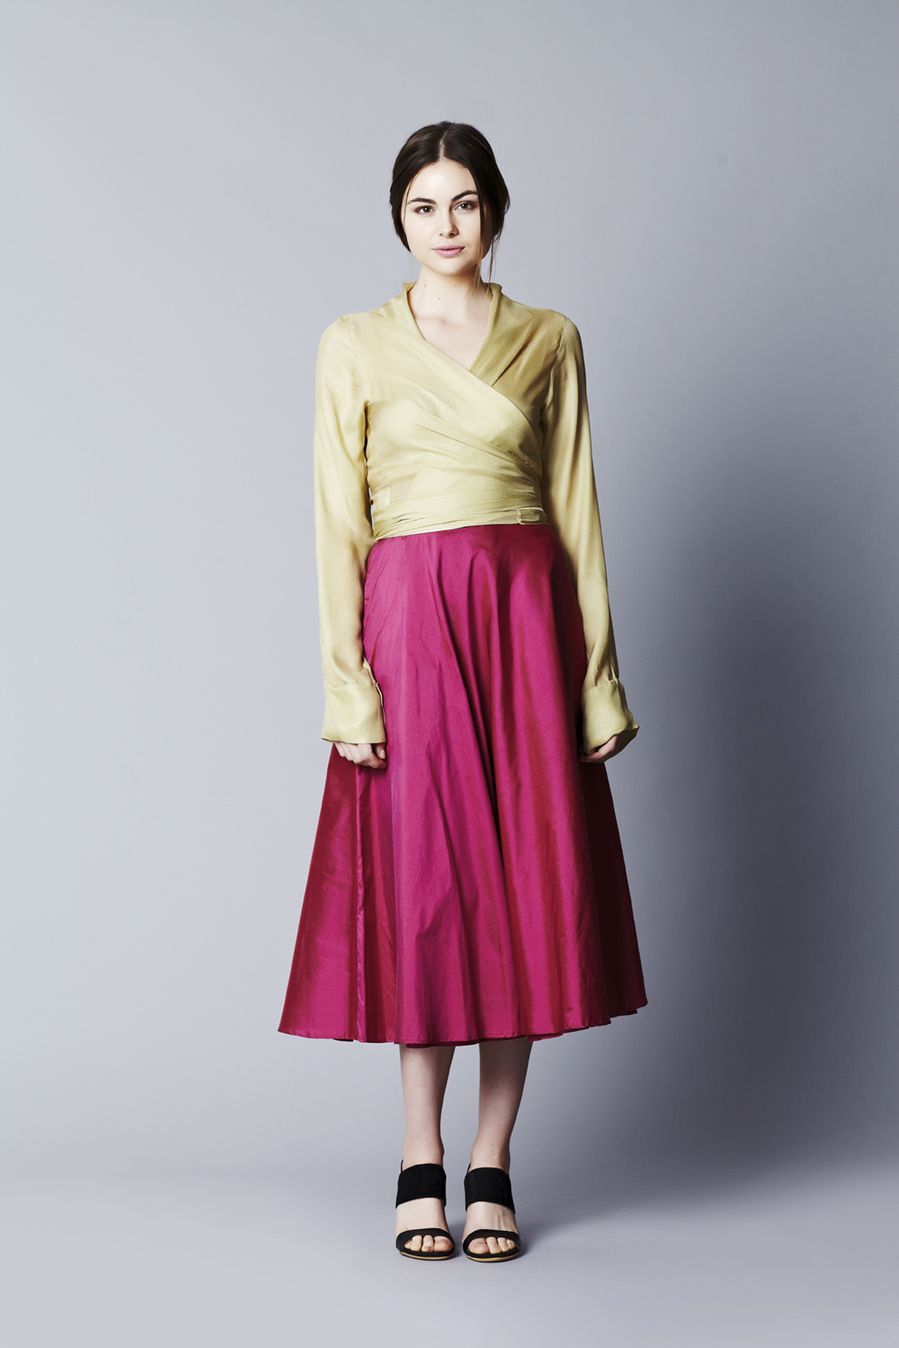 Marakesh Wrap // Citron  Greta Garbo half circle skirt // Lipstick